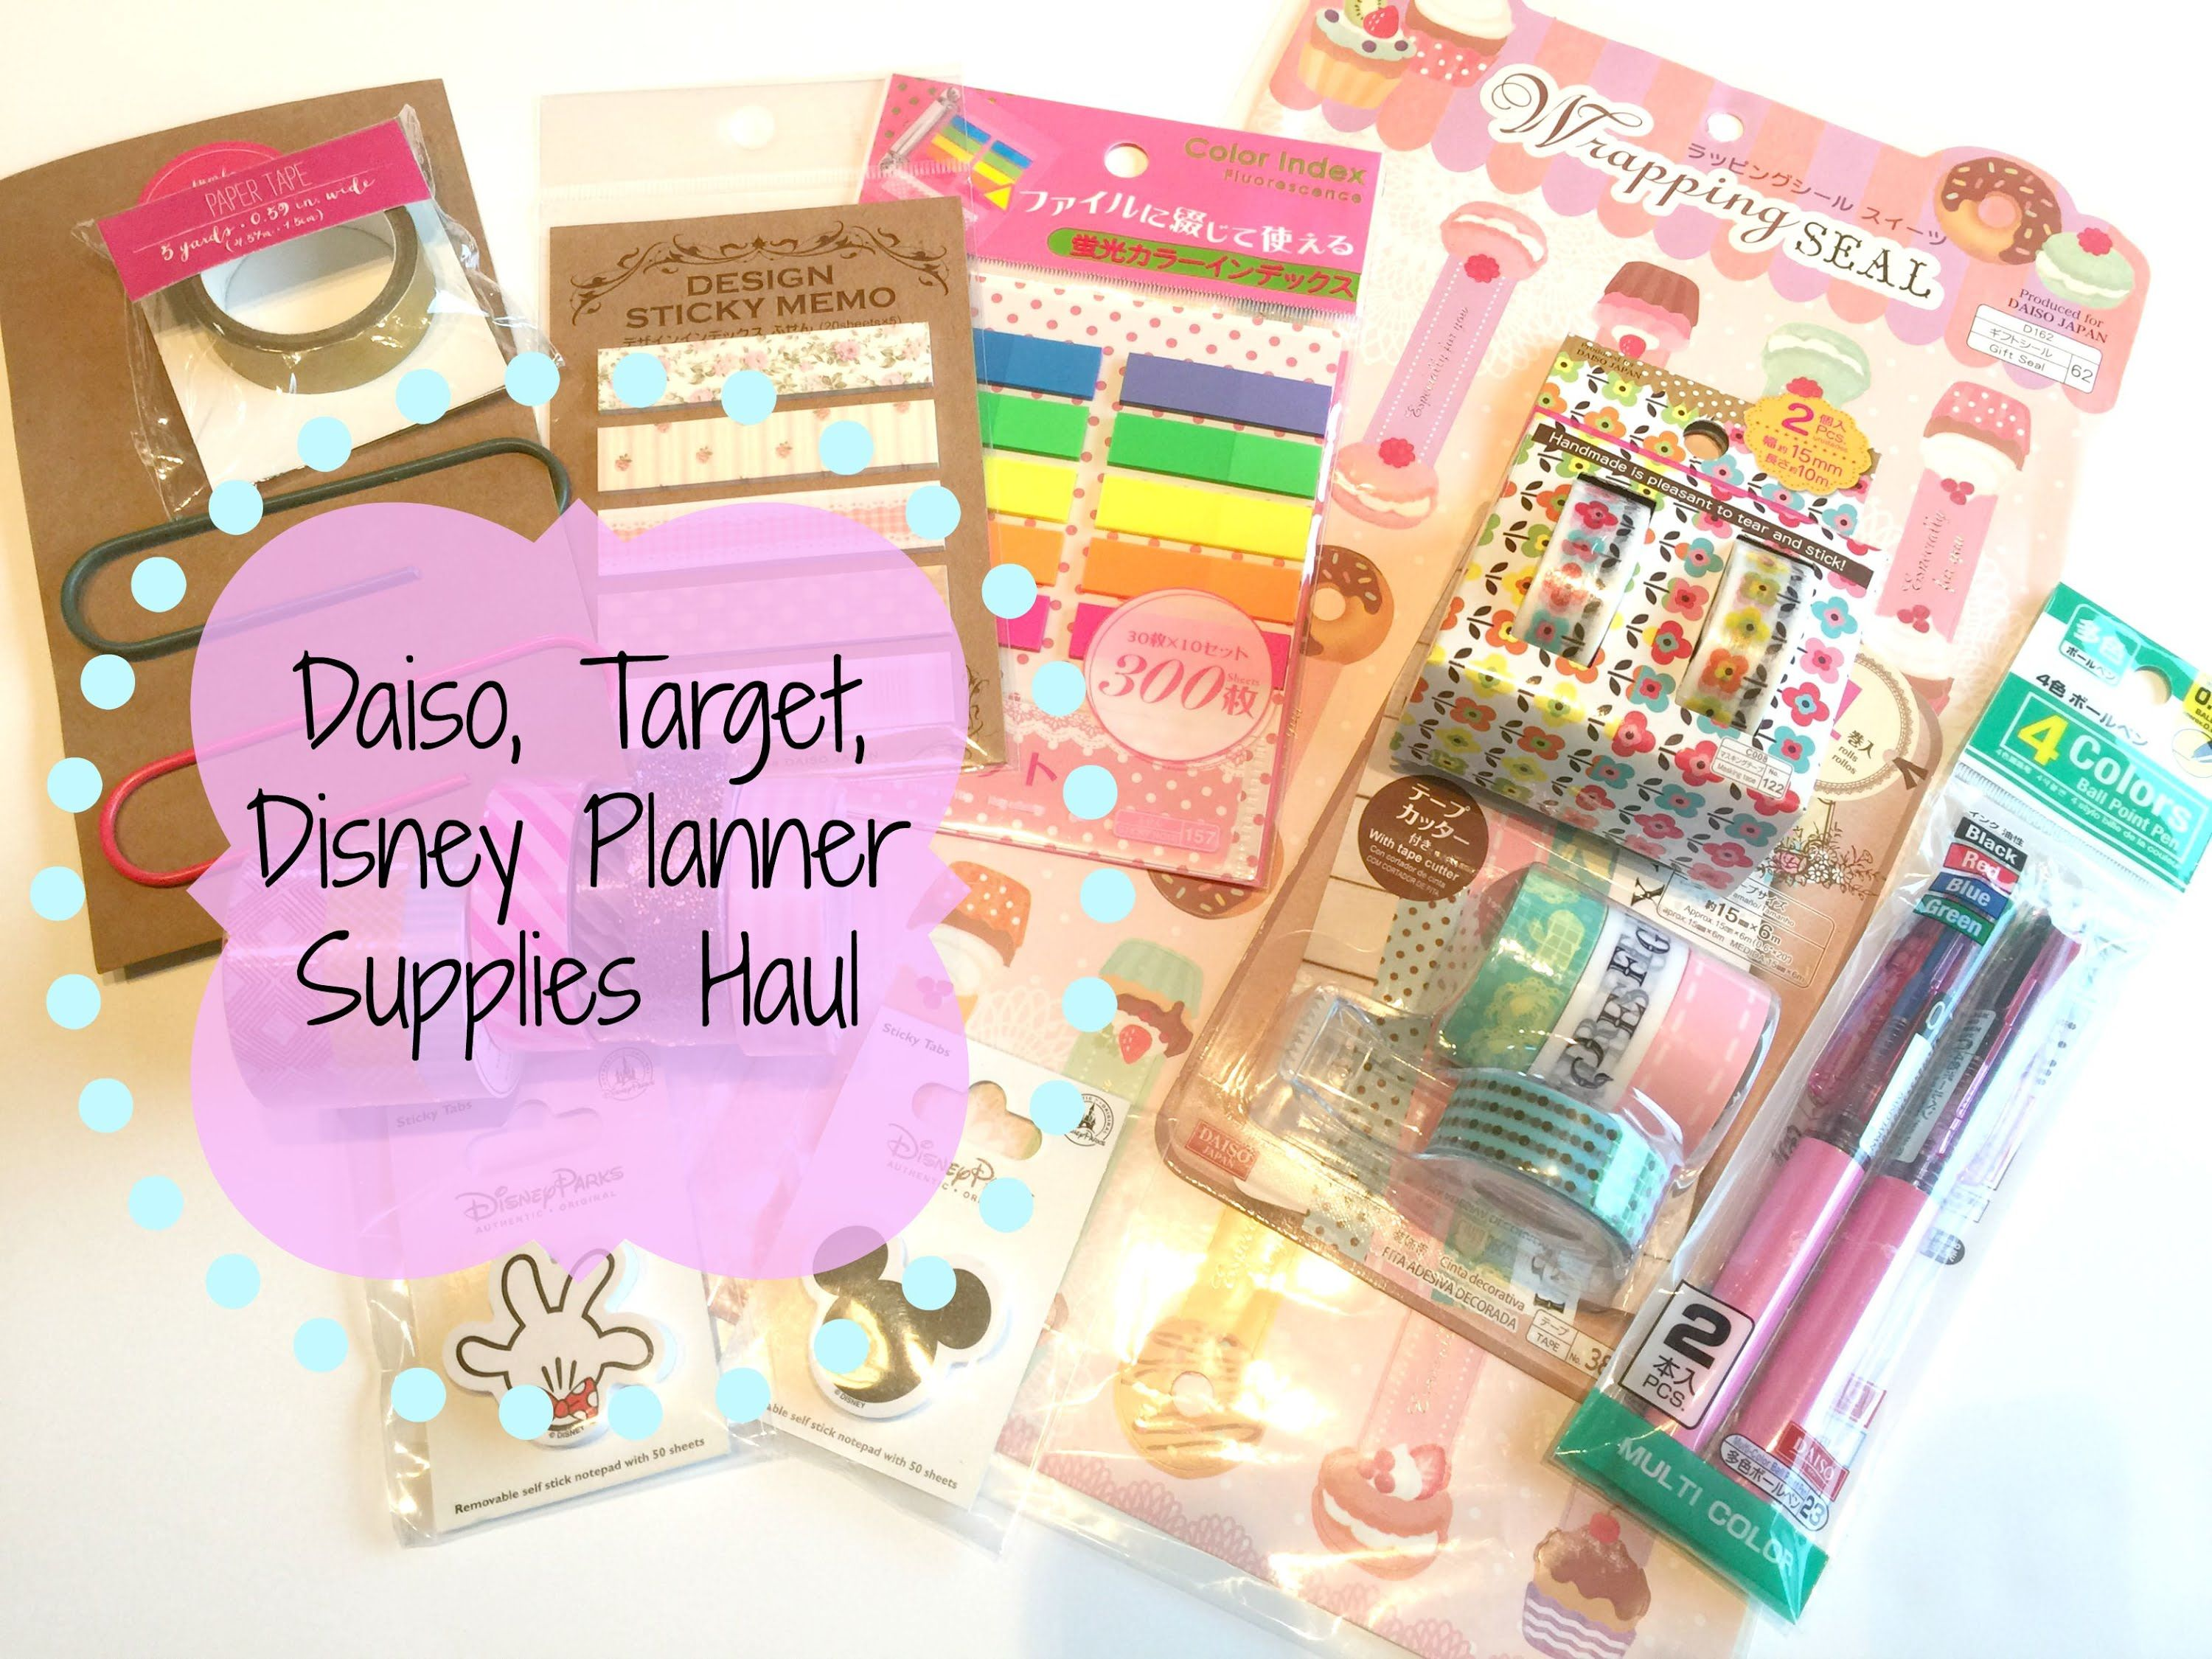 image about Planner Supplies named HAUL Daiso, Concentrate, Disney Planner Materials Software Your Daily life